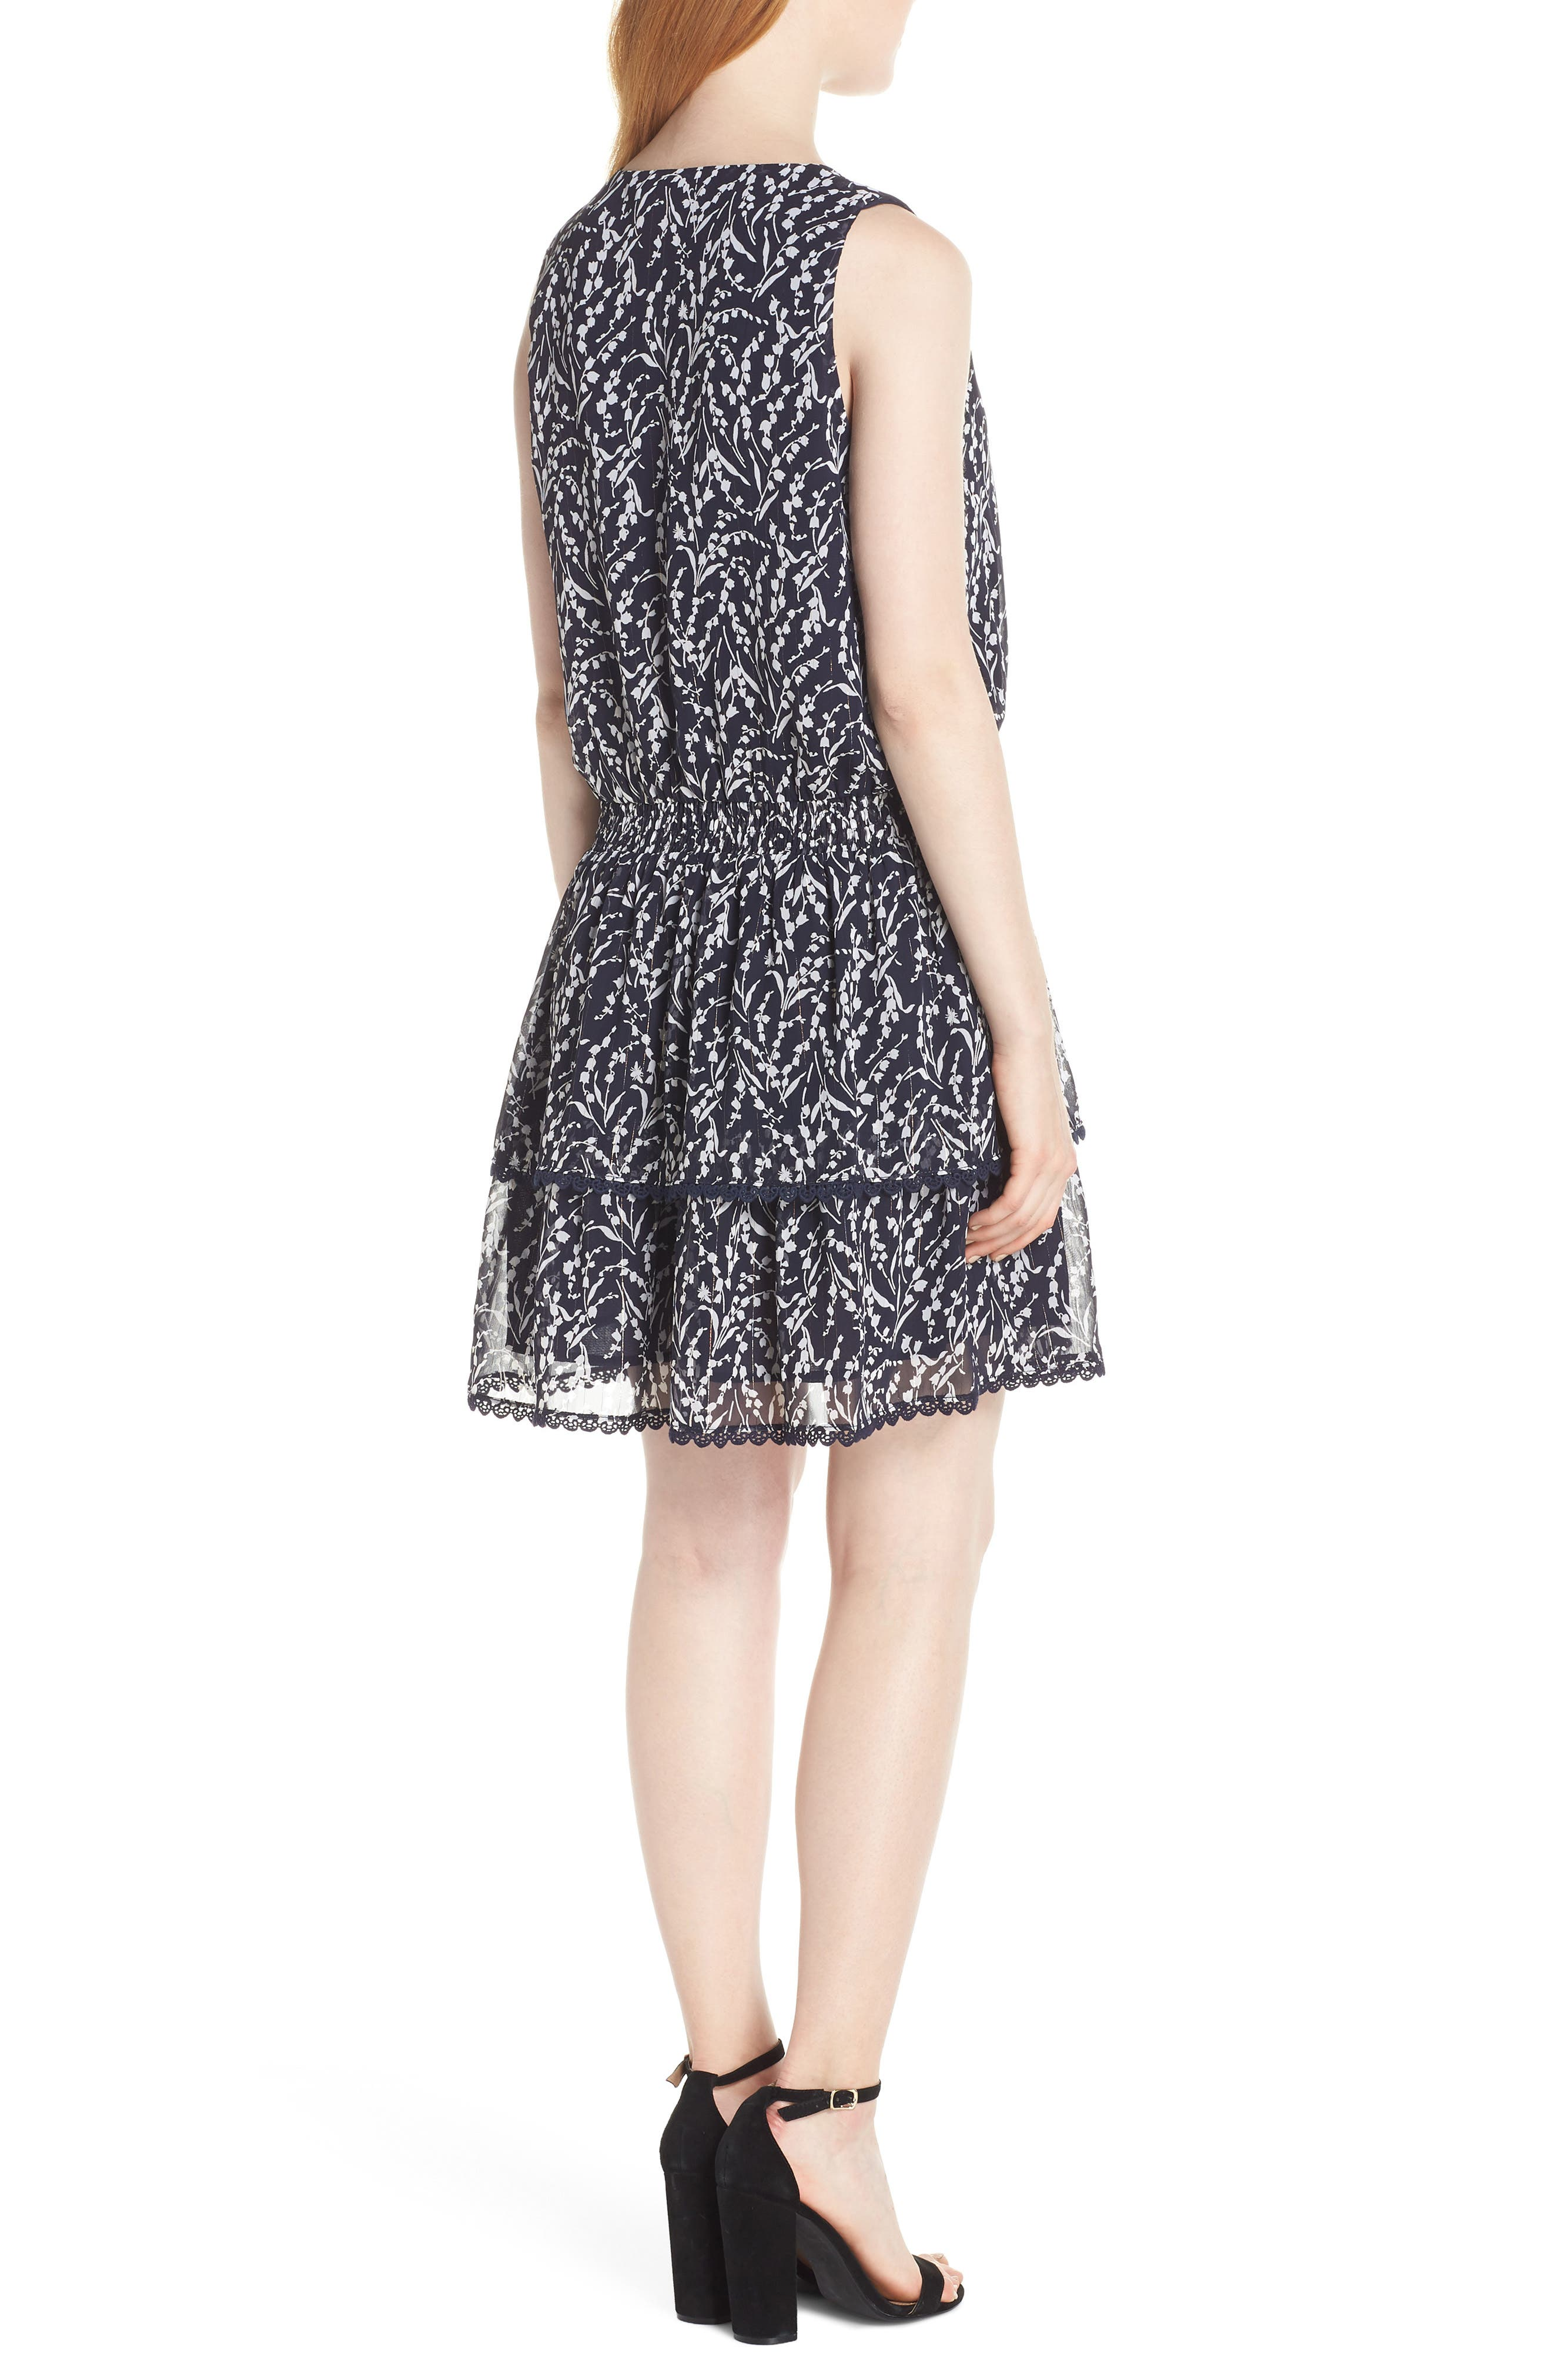 19 COOPER, Tiered Floral Sleeveless Dress, Alternate thumbnail 2, color, NAVY/ WHITE